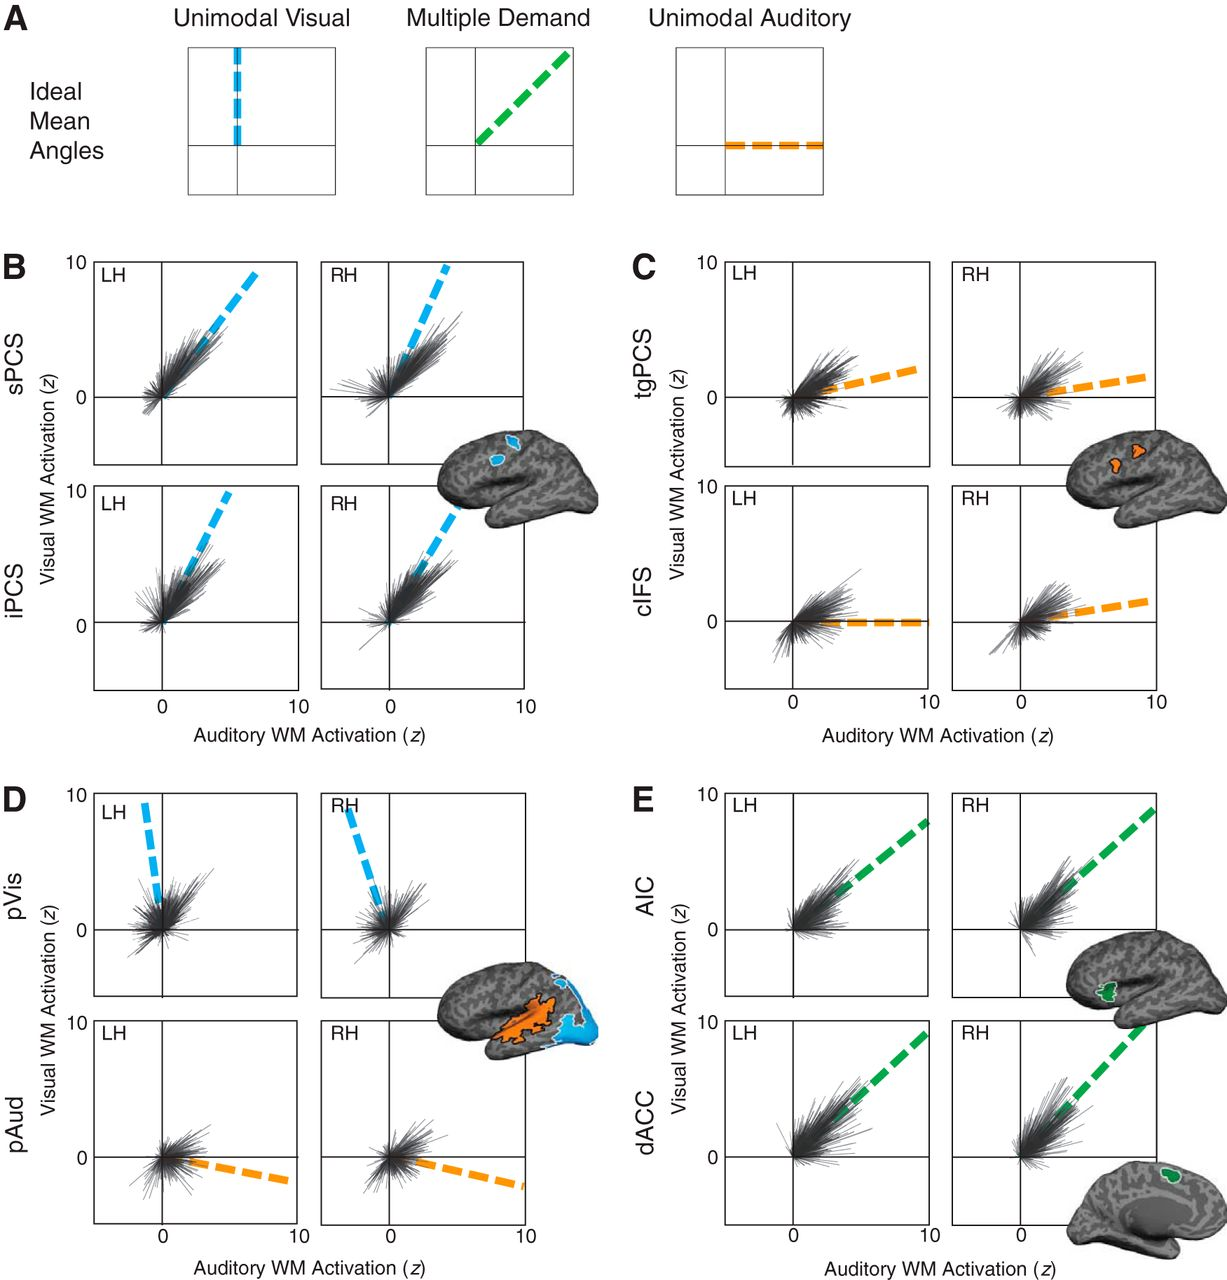 Sensory Biased And Multiple Demand Processing In Human Lateral